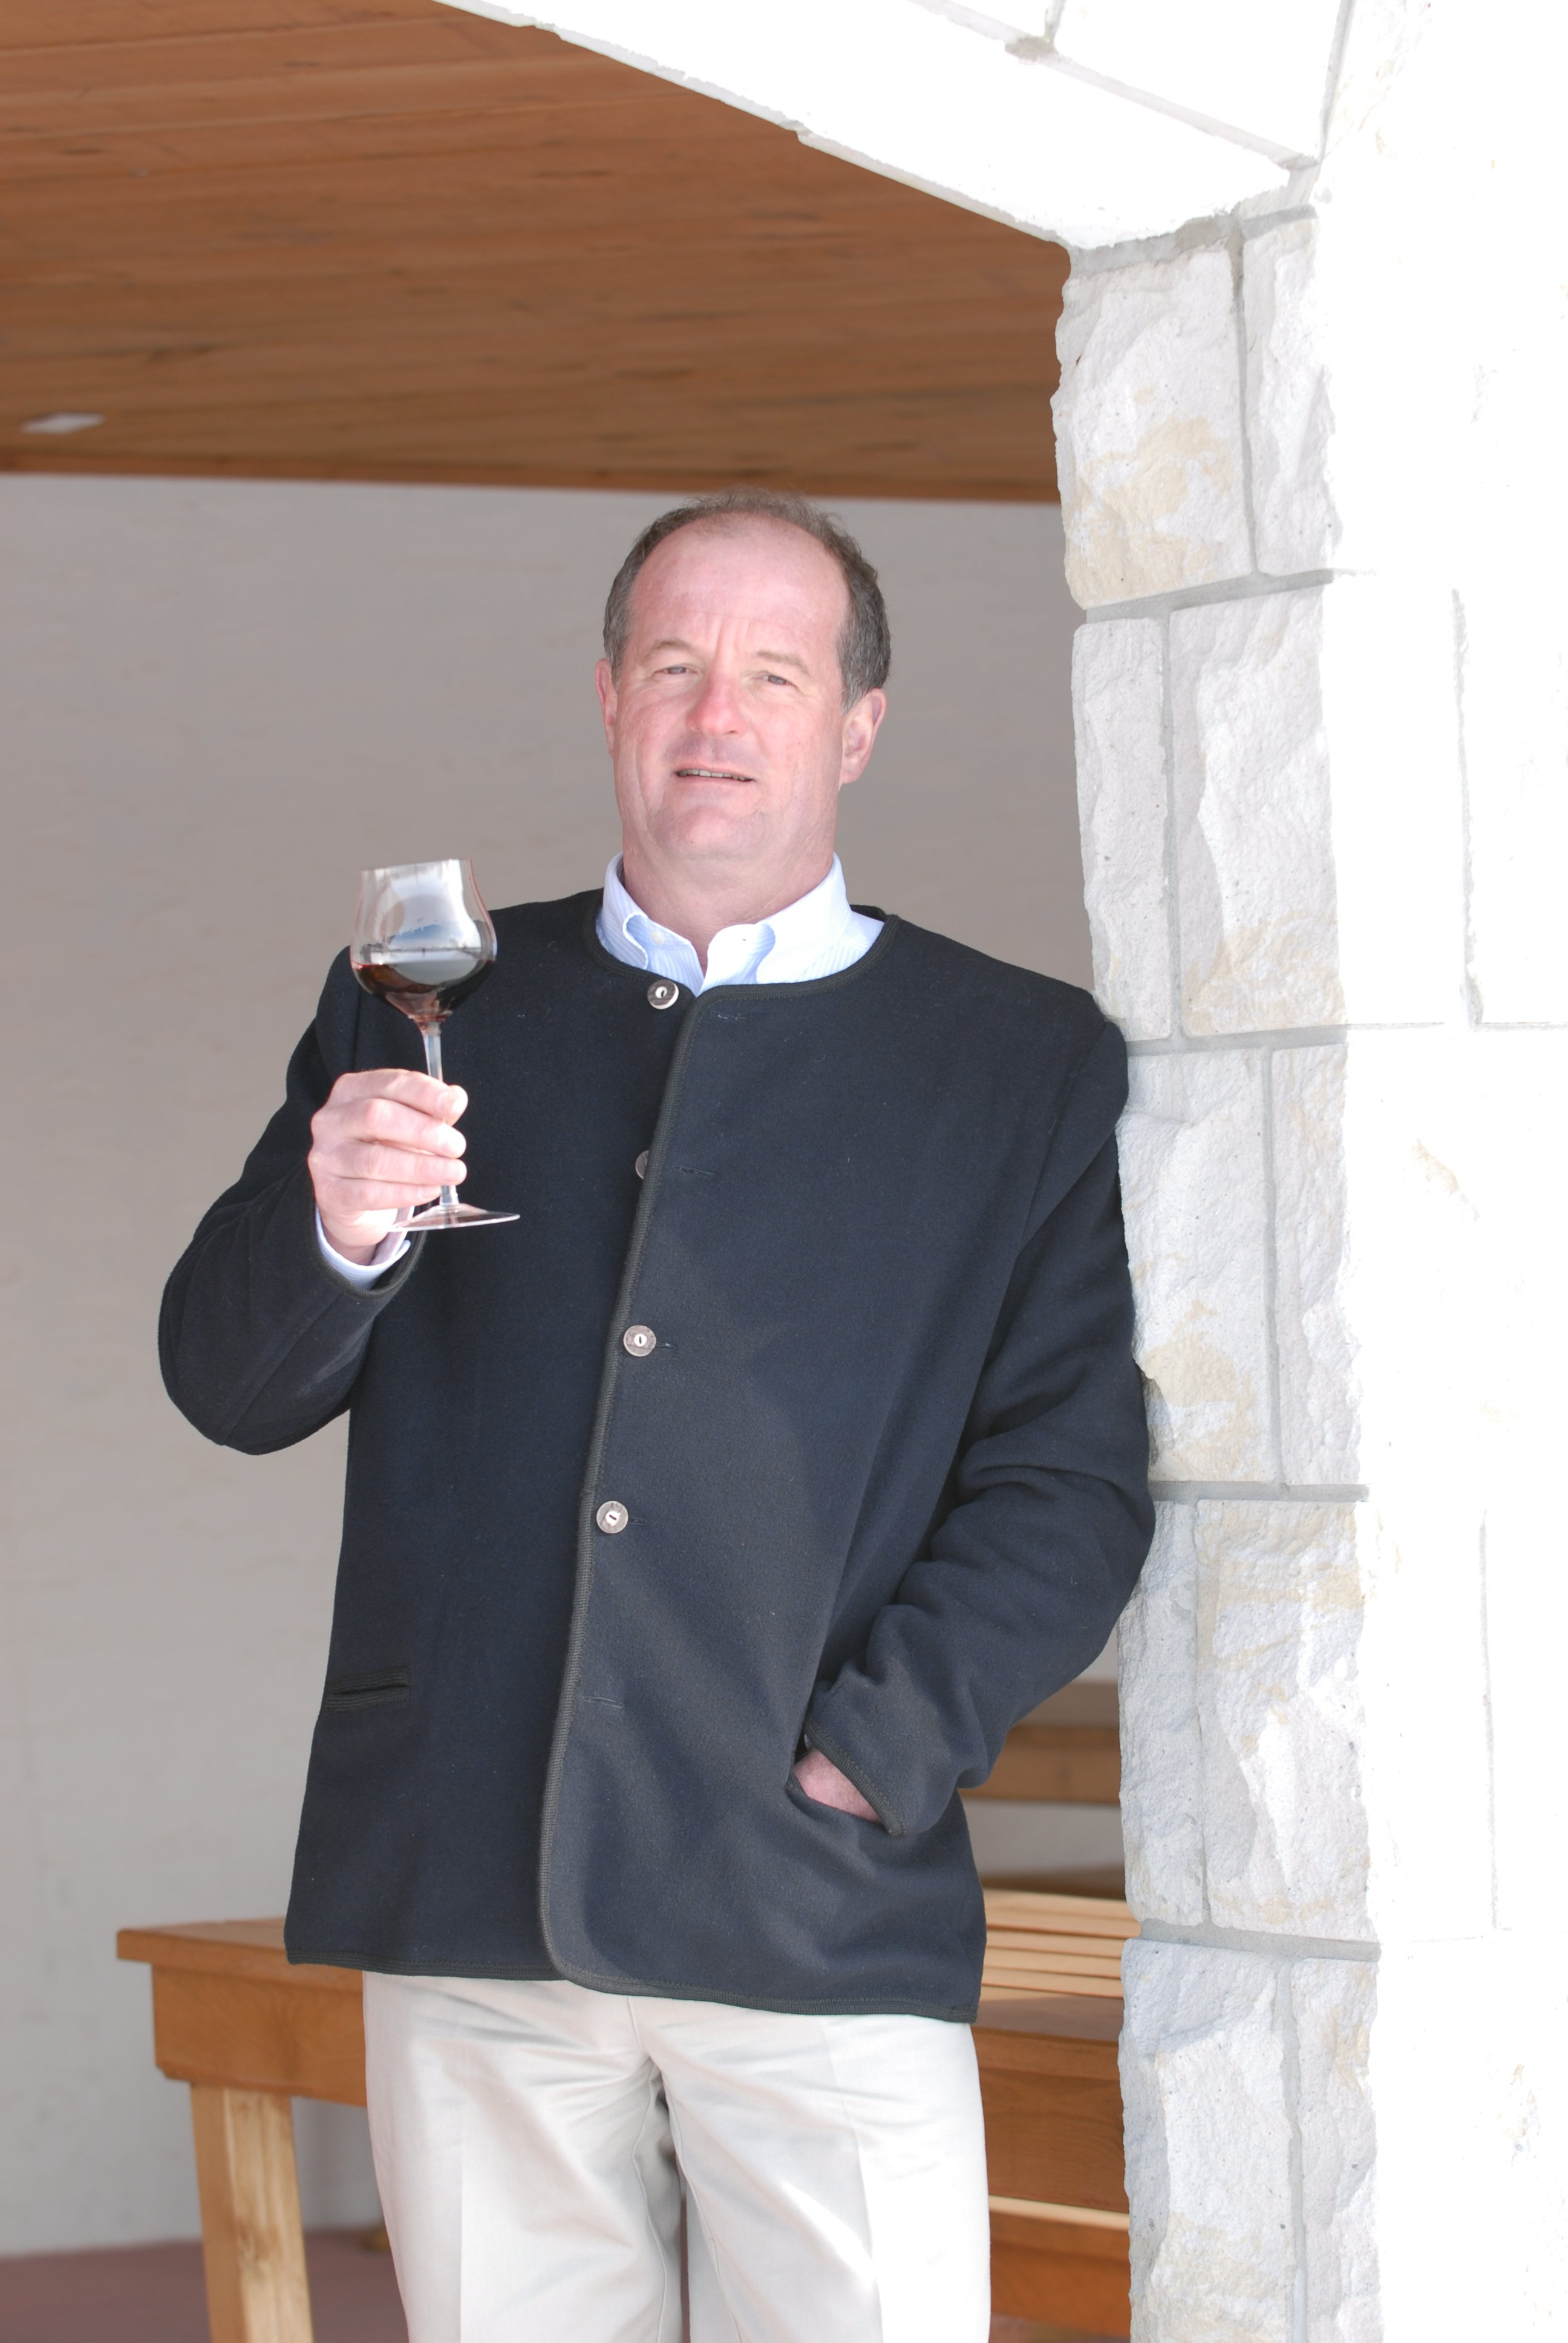 Winemaker and Proprietor Walter Schmoranz of the award winning Pelee Island Winery.